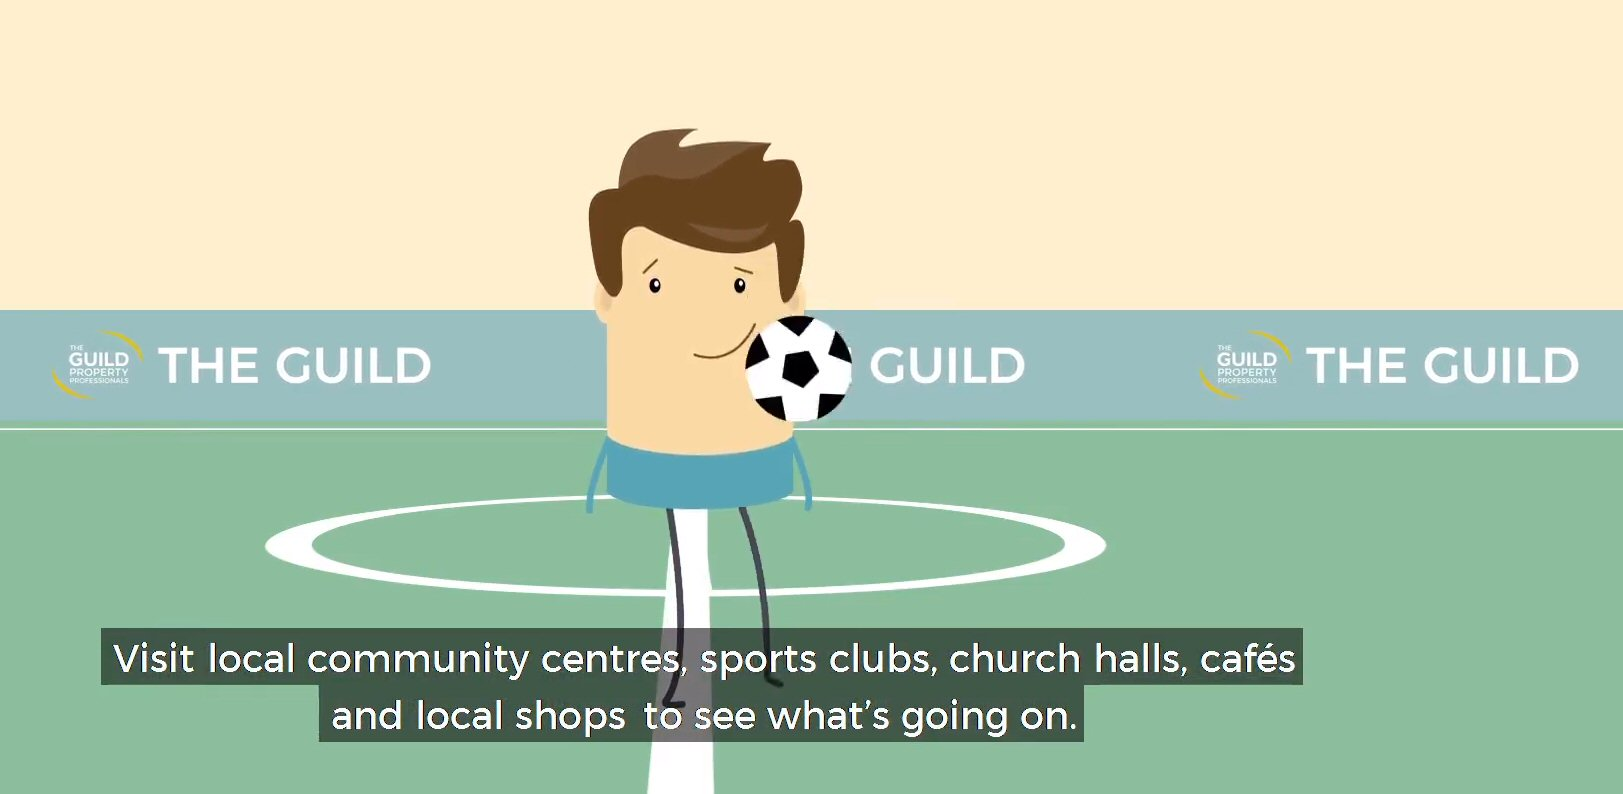 VIDEO: How can you tell if an area has good community spirit?